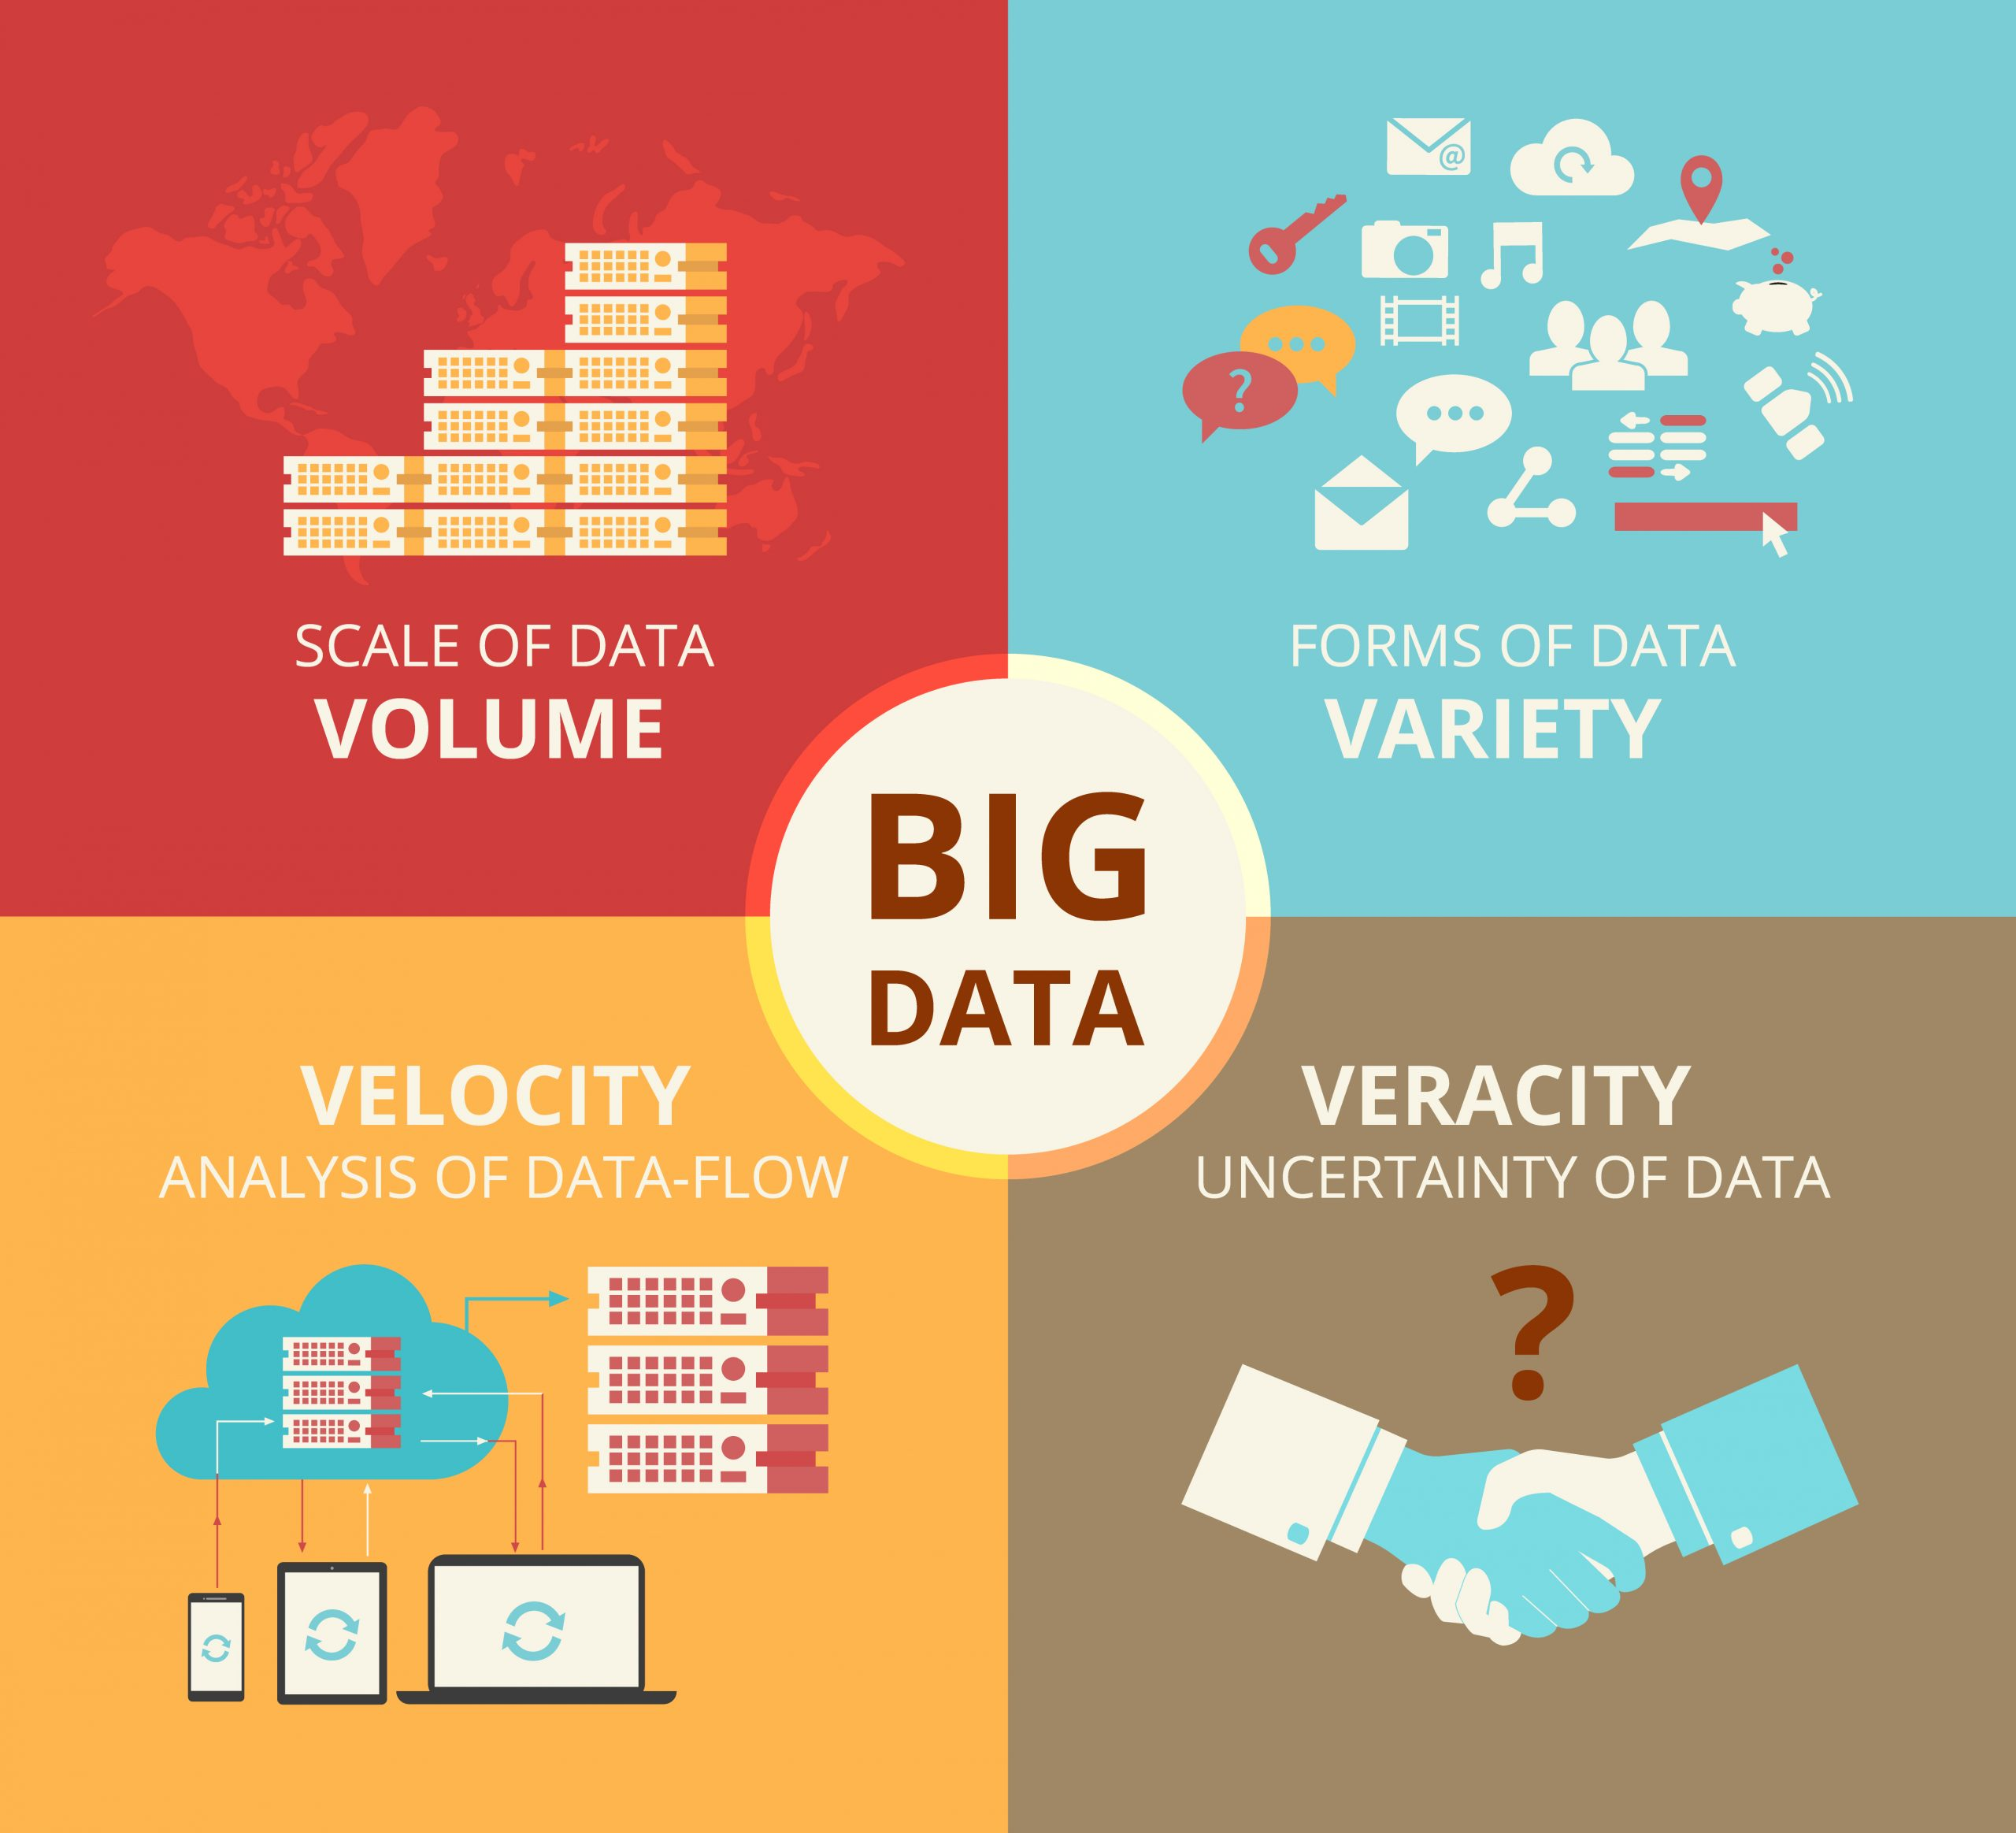 Découvrez 11 outils qui utilisent le Big Data pour faire du Marketing, du Growth Hacking... 1